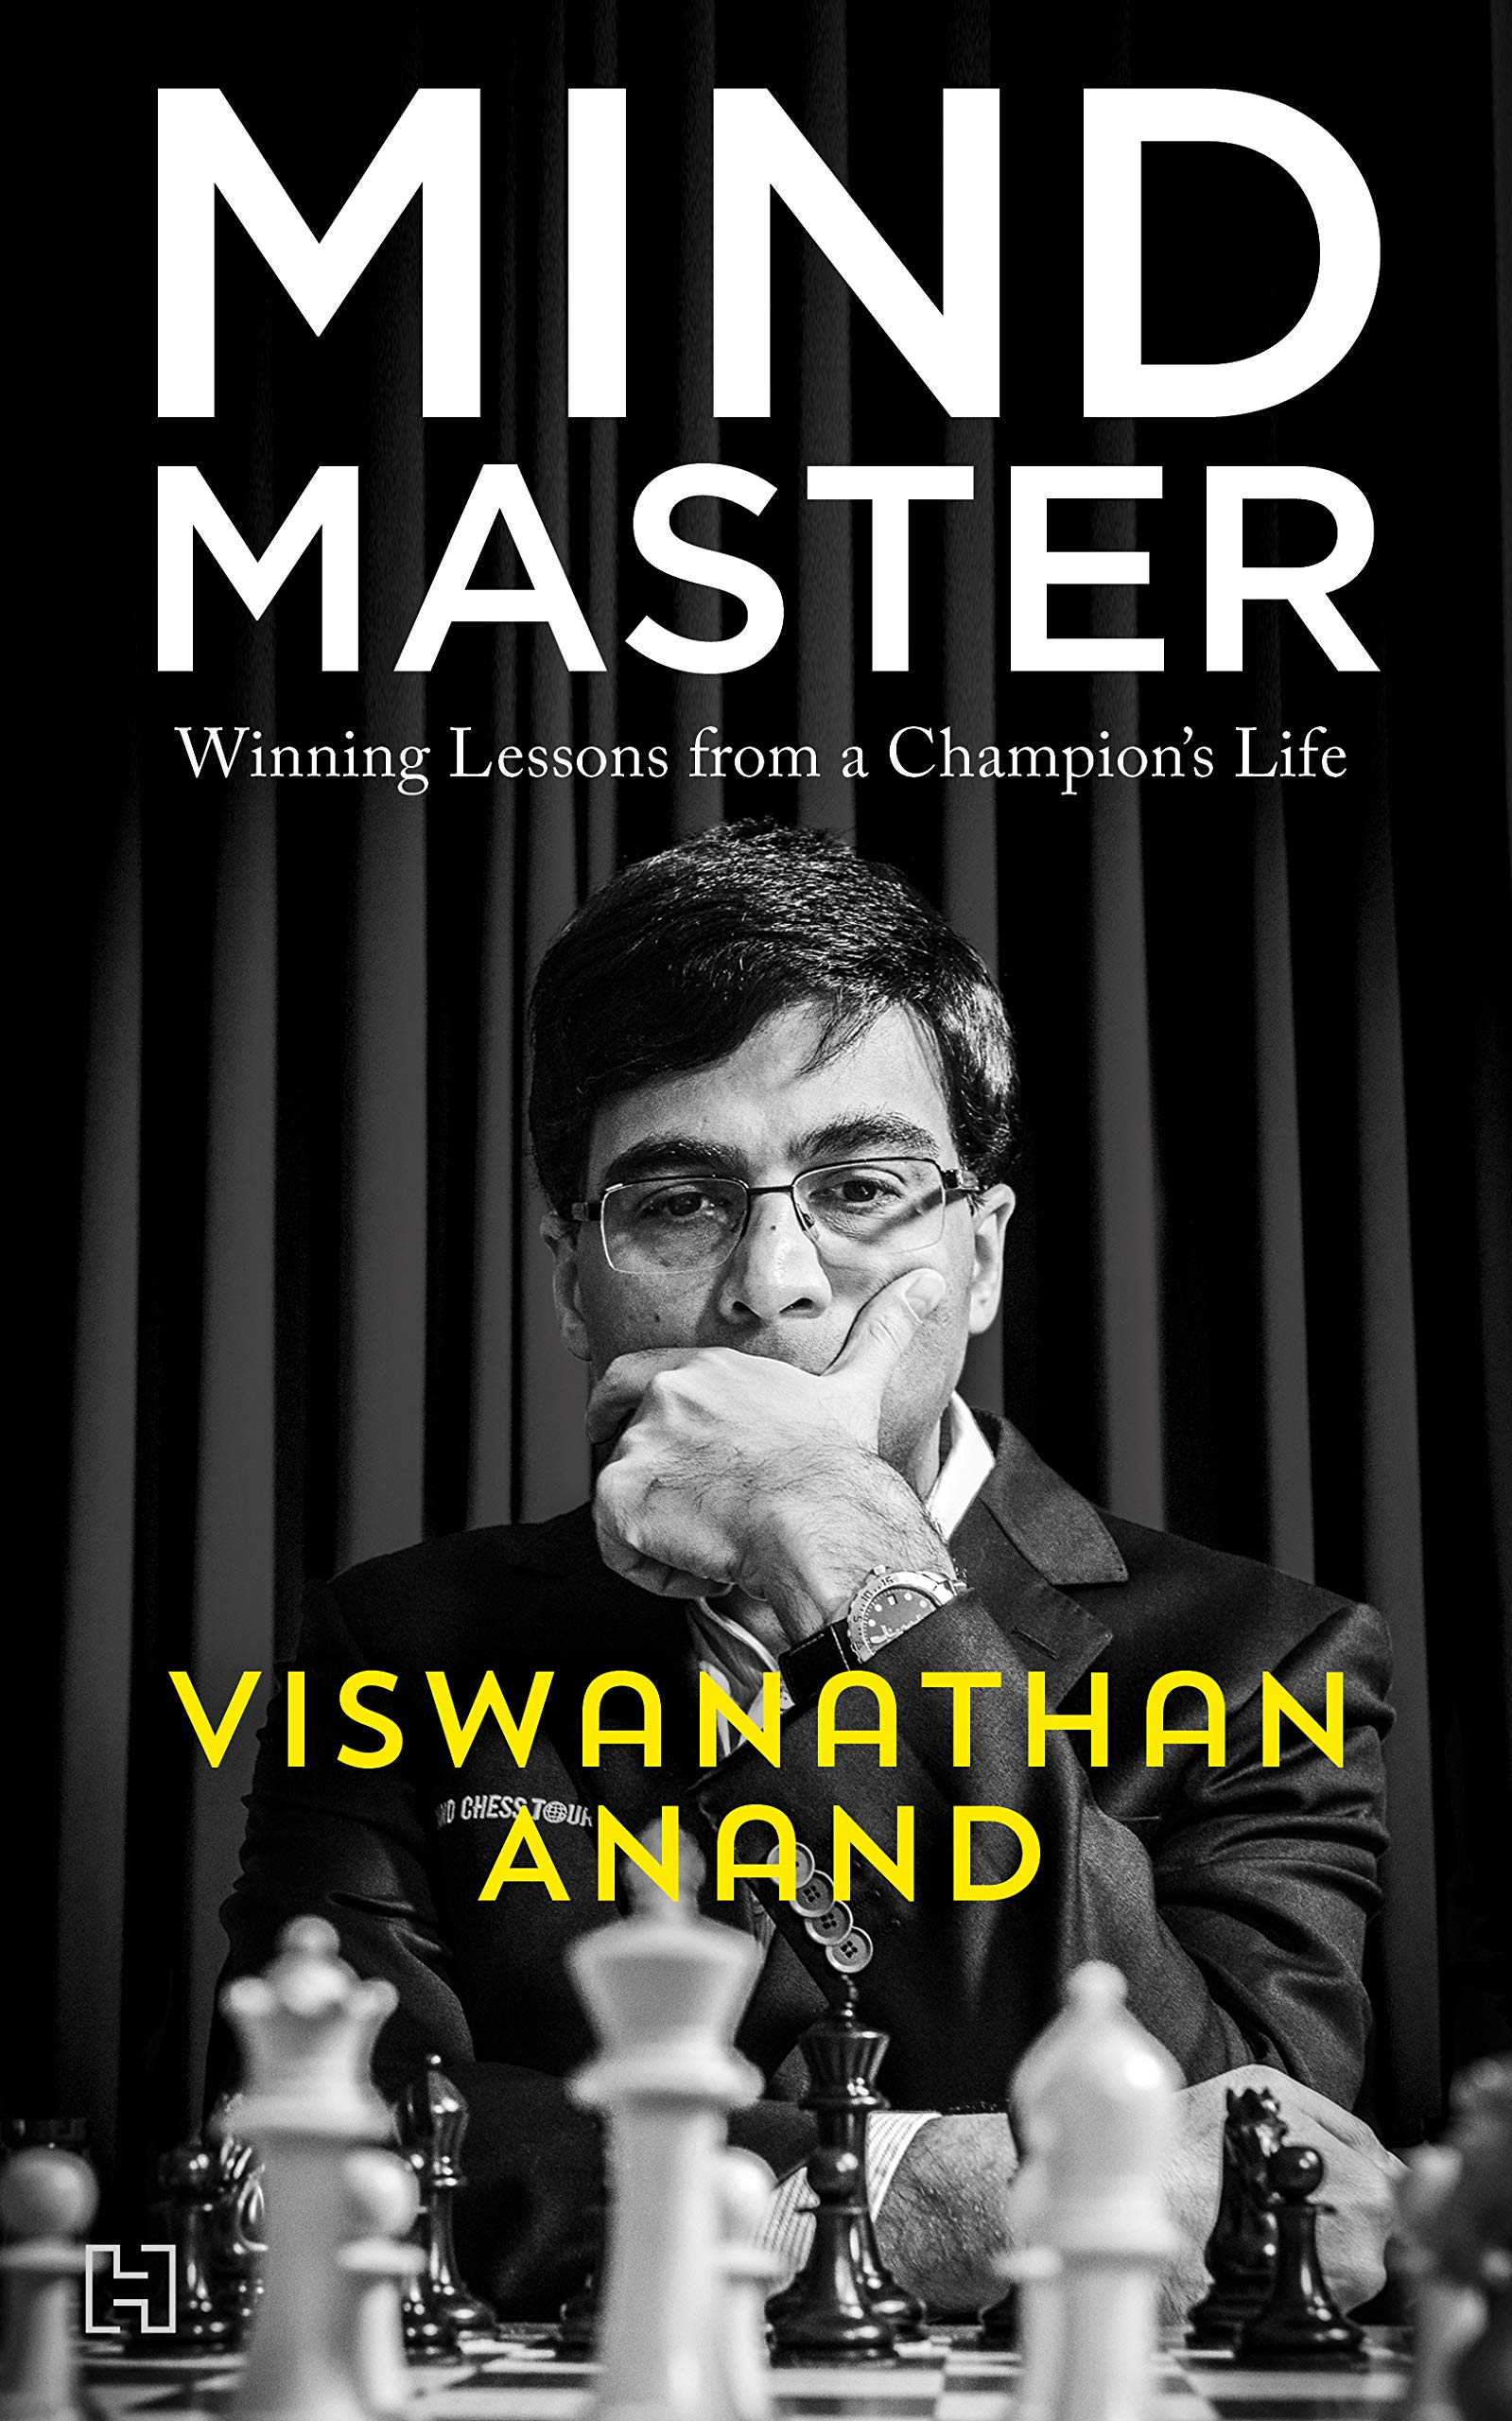 Mind Master: Winning Lessons from a Champion's Life (9351951502) Amazon Price History, Amazon Price Tracker